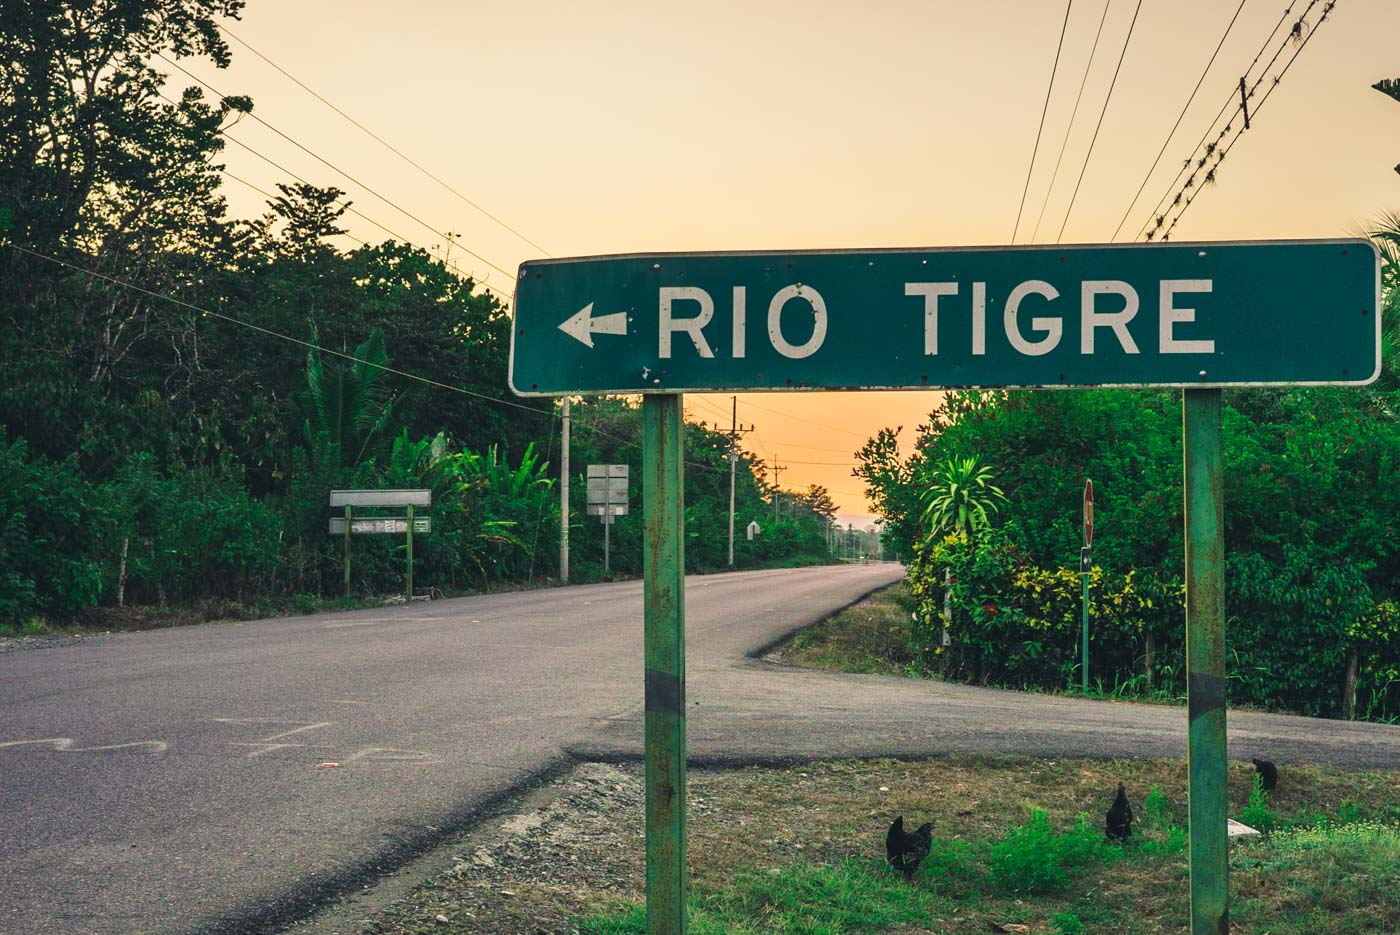 Visit Corcovado National Park: Rio Tigre, the getaway to rural tourism in Osa Peninsula